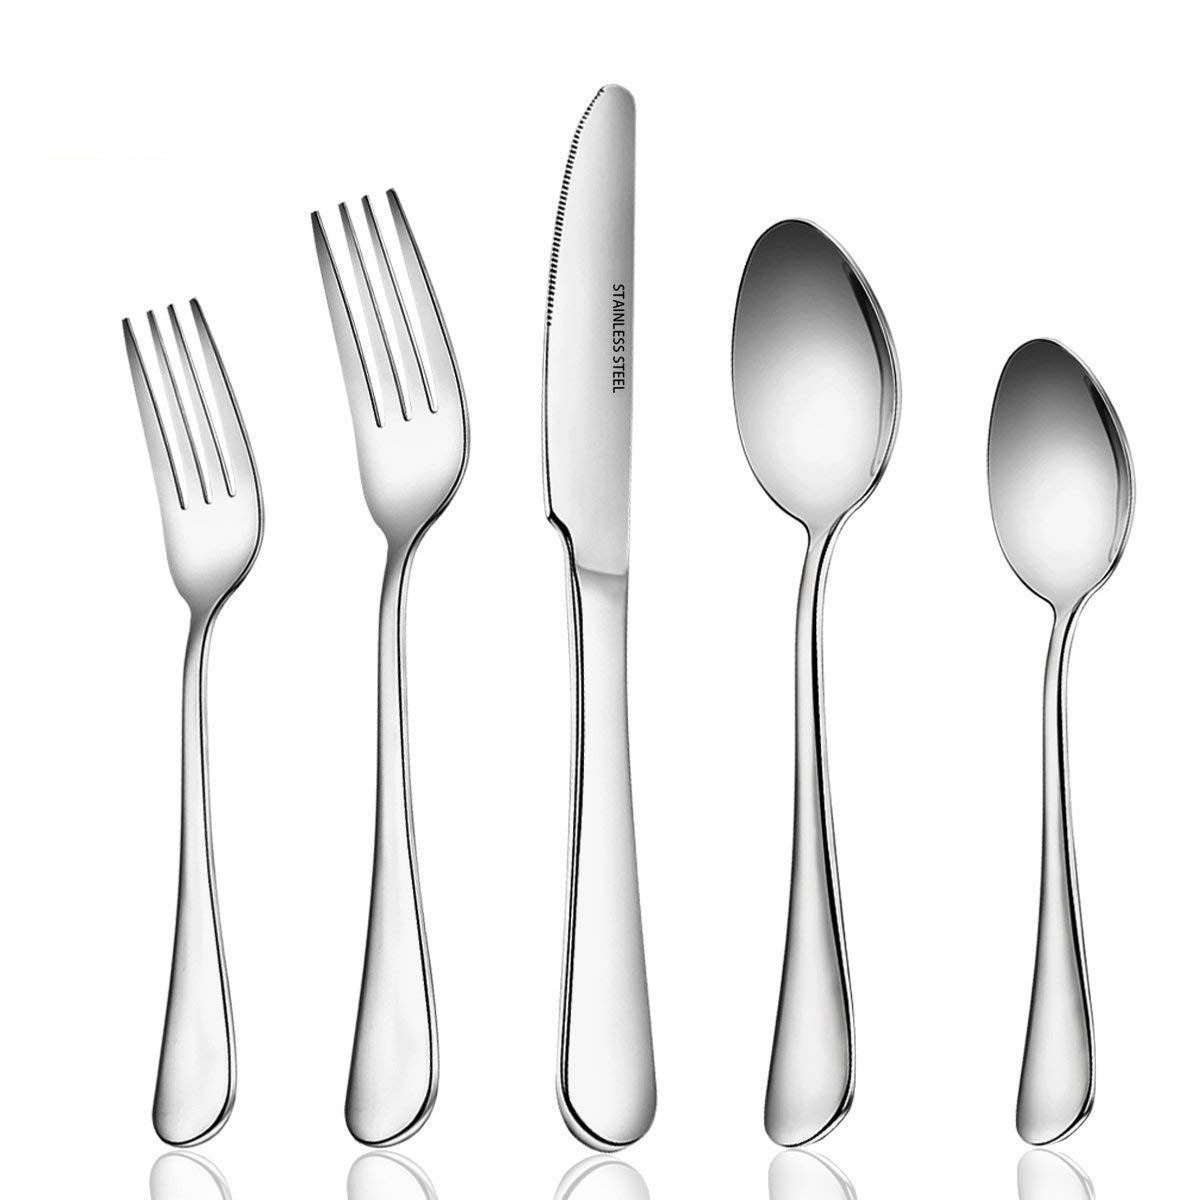 Umite Chef 20 Piece Fine Flatware Set, Cutlery Sets Stainless Steel Mirror Polished with Dinner Knives, Forks and Spoons for Dessert & Dinner, Modern Eating (Umiten5O2)